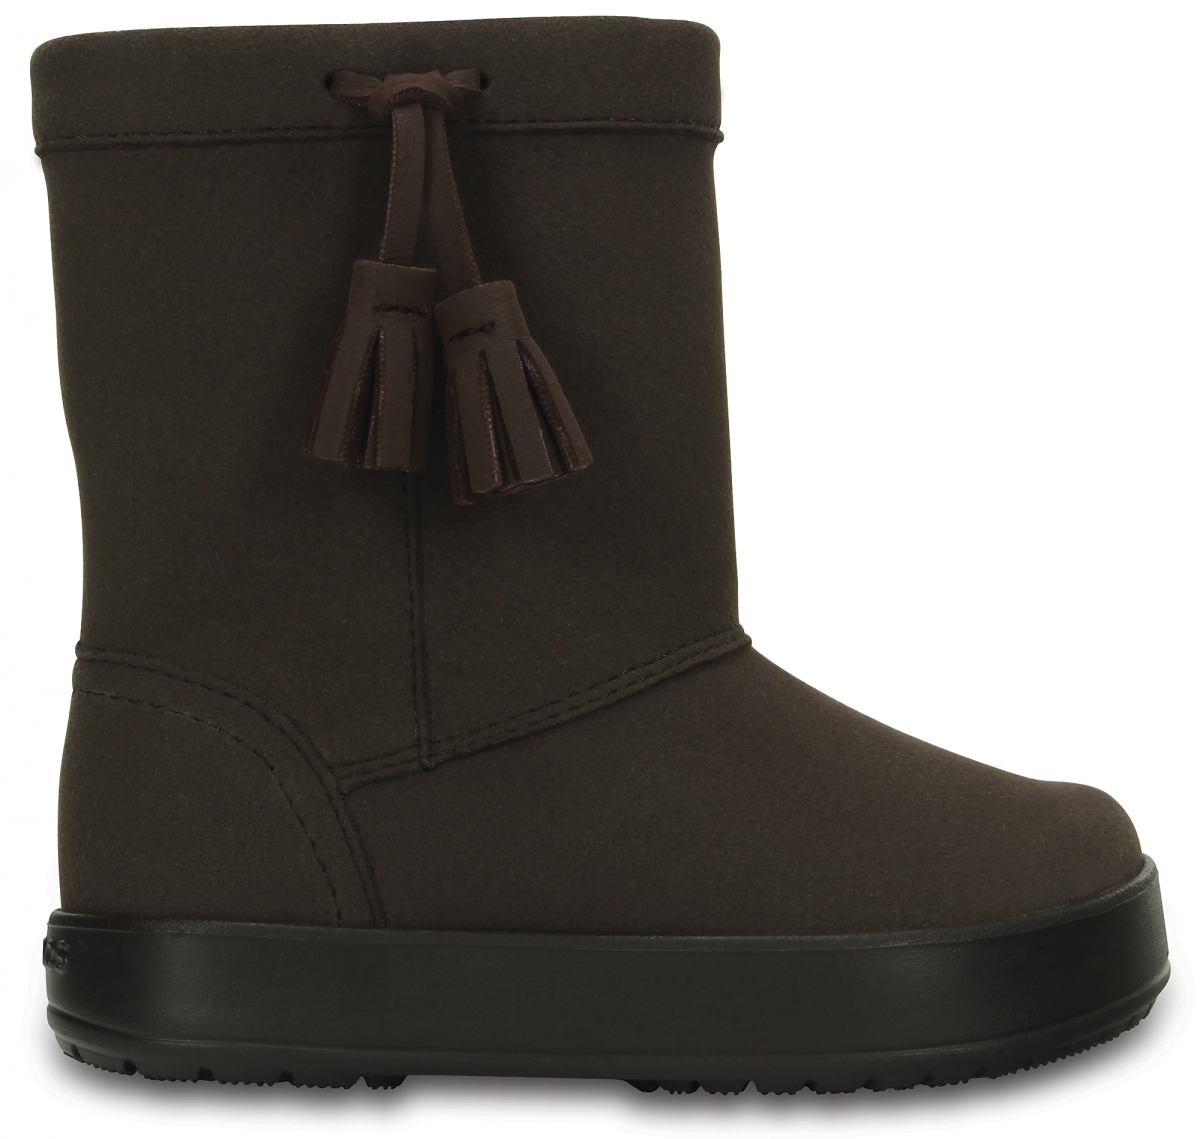 Crocs LodgePoint Boot Kids - Espresso, C12 (29-30)